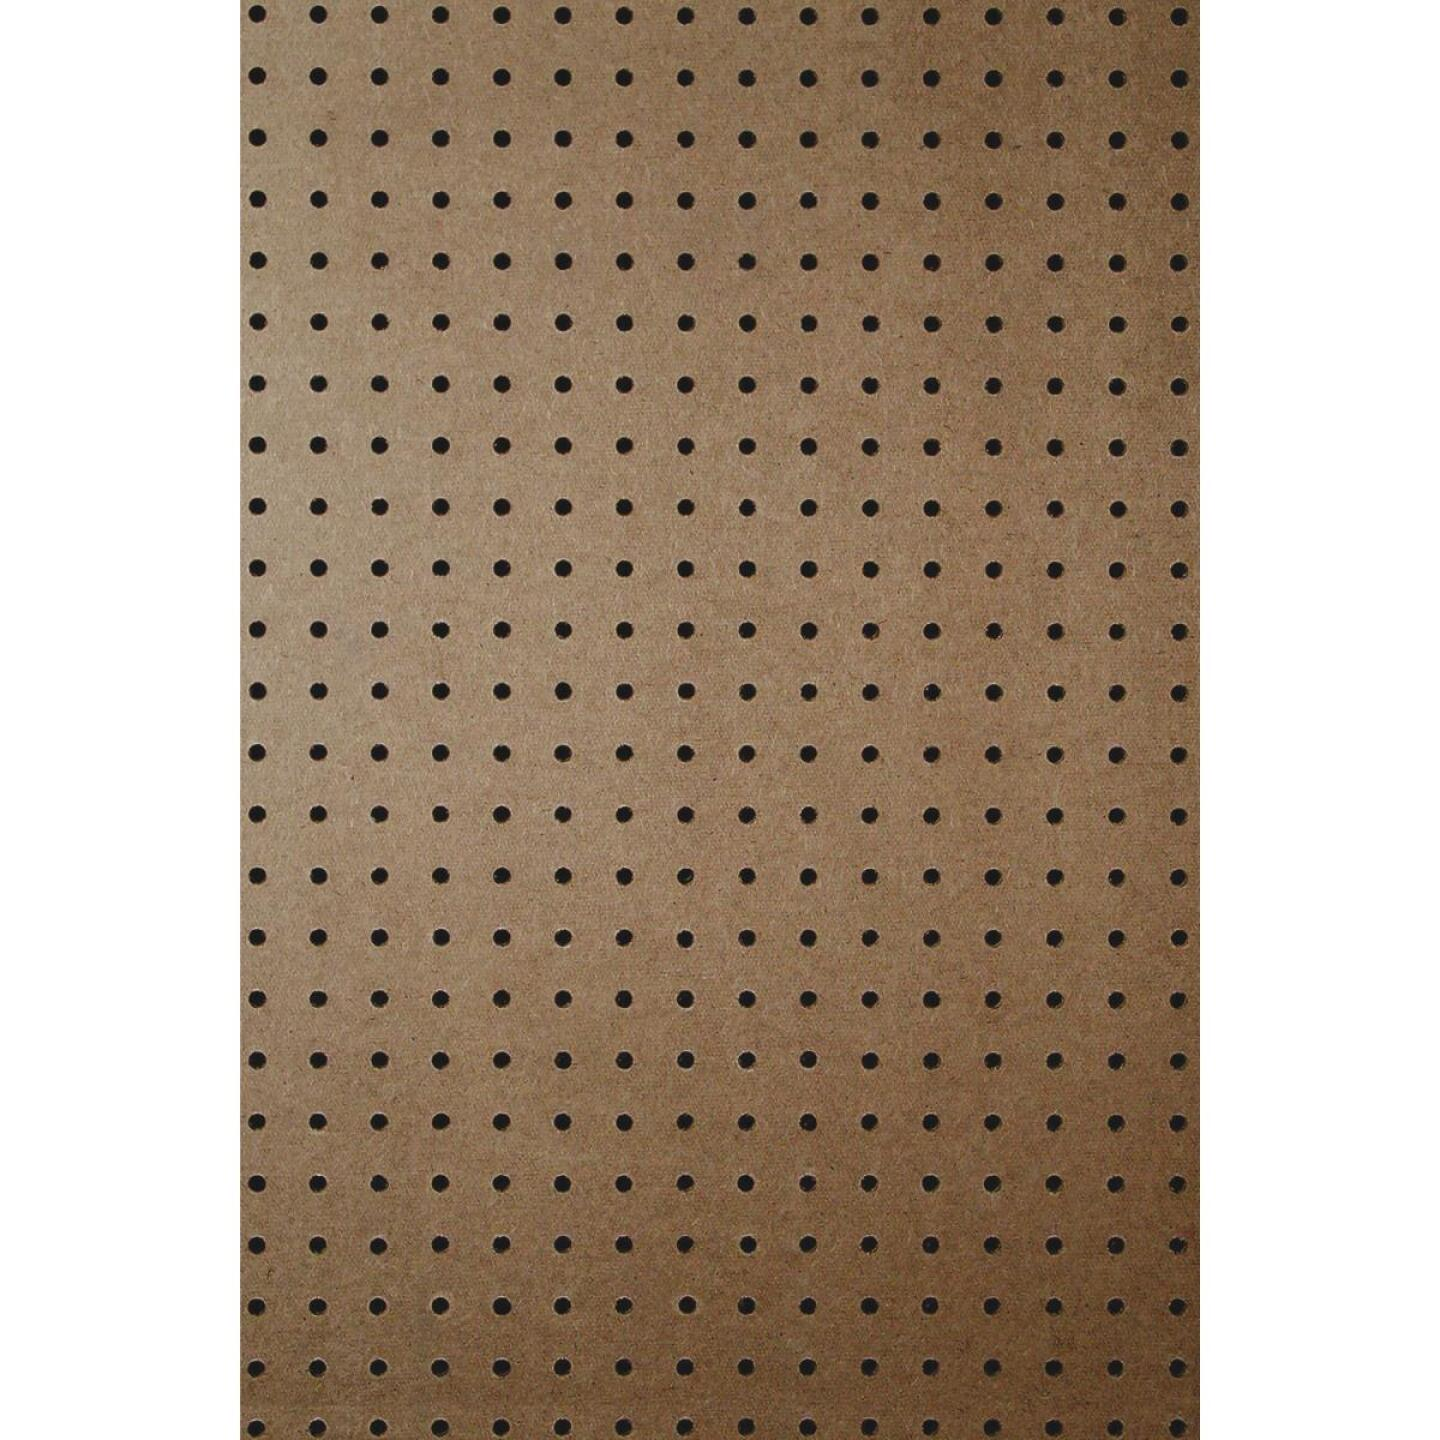 DPI 4 ft. x 8 ft. Tempered Pegboard Image 1